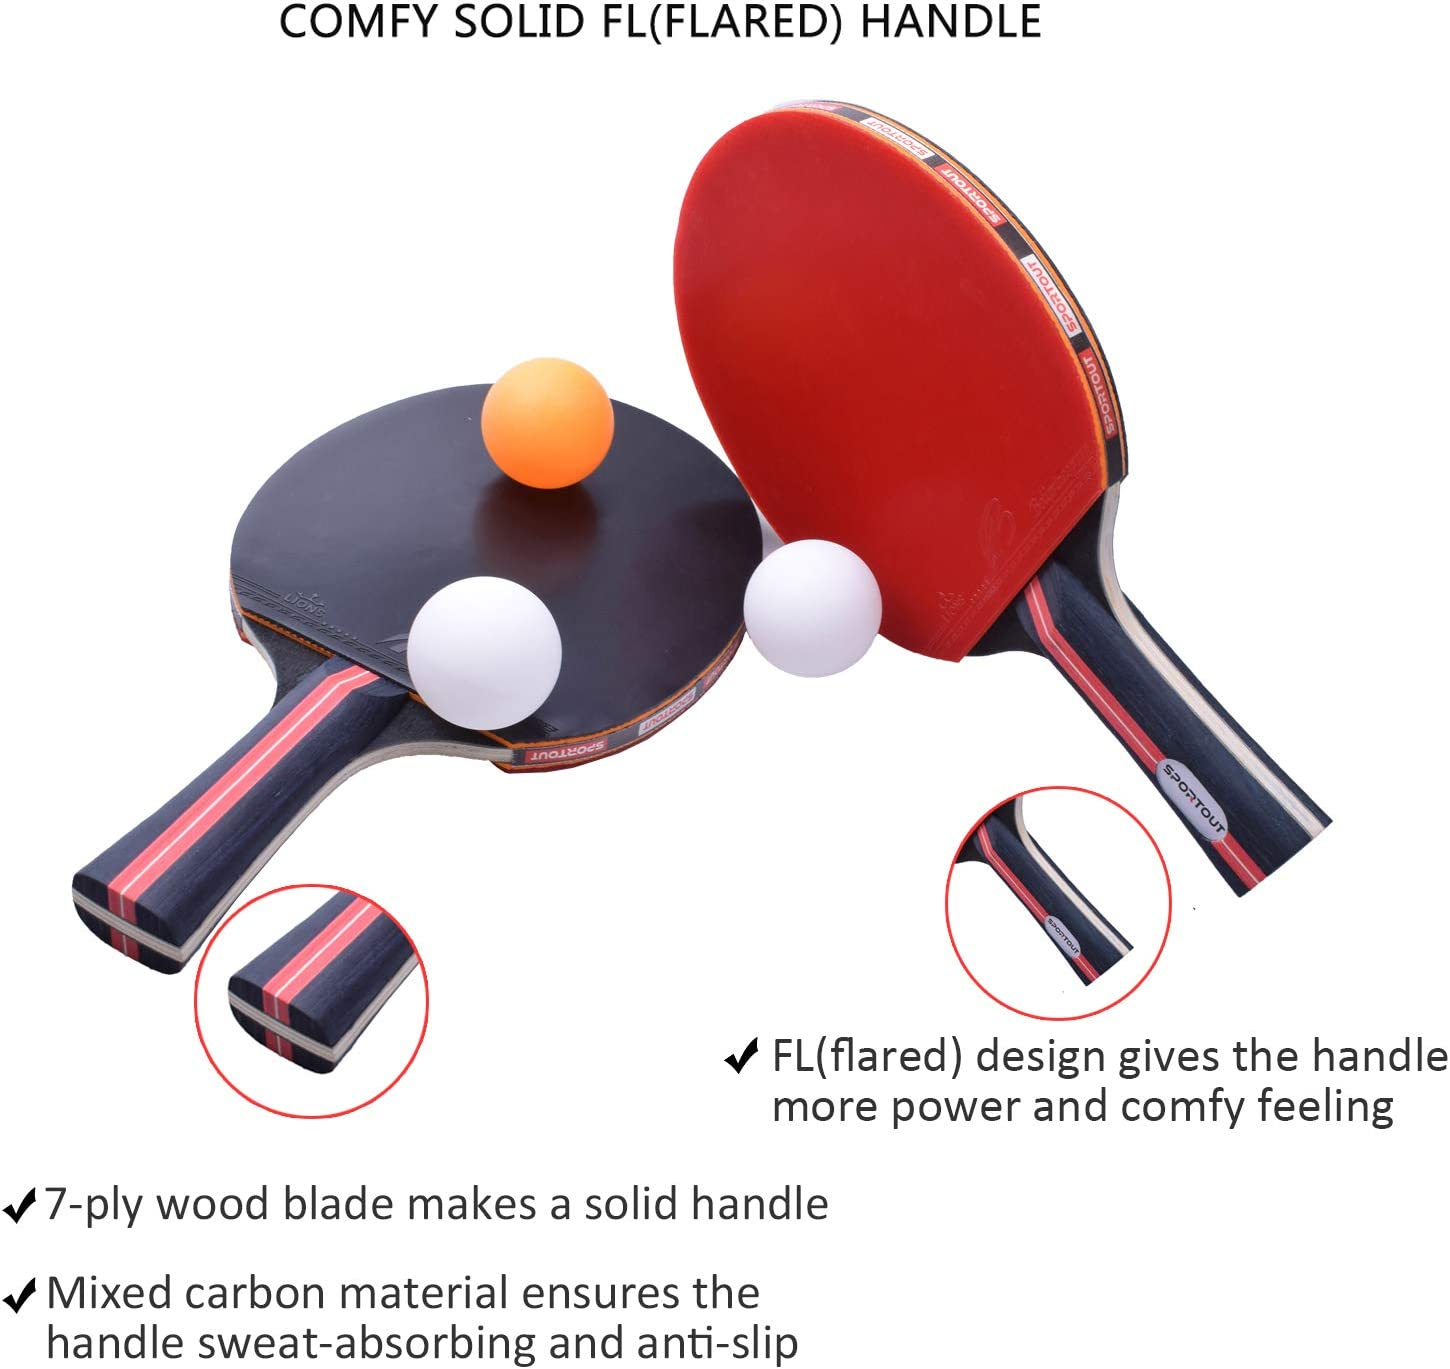 Sportout Table Tennis Racket, Ping Pong Paddle Set with 2 Bats and 3 Ping Pong Balls and Table Tennis Paddle Case : Sports & Outdoors